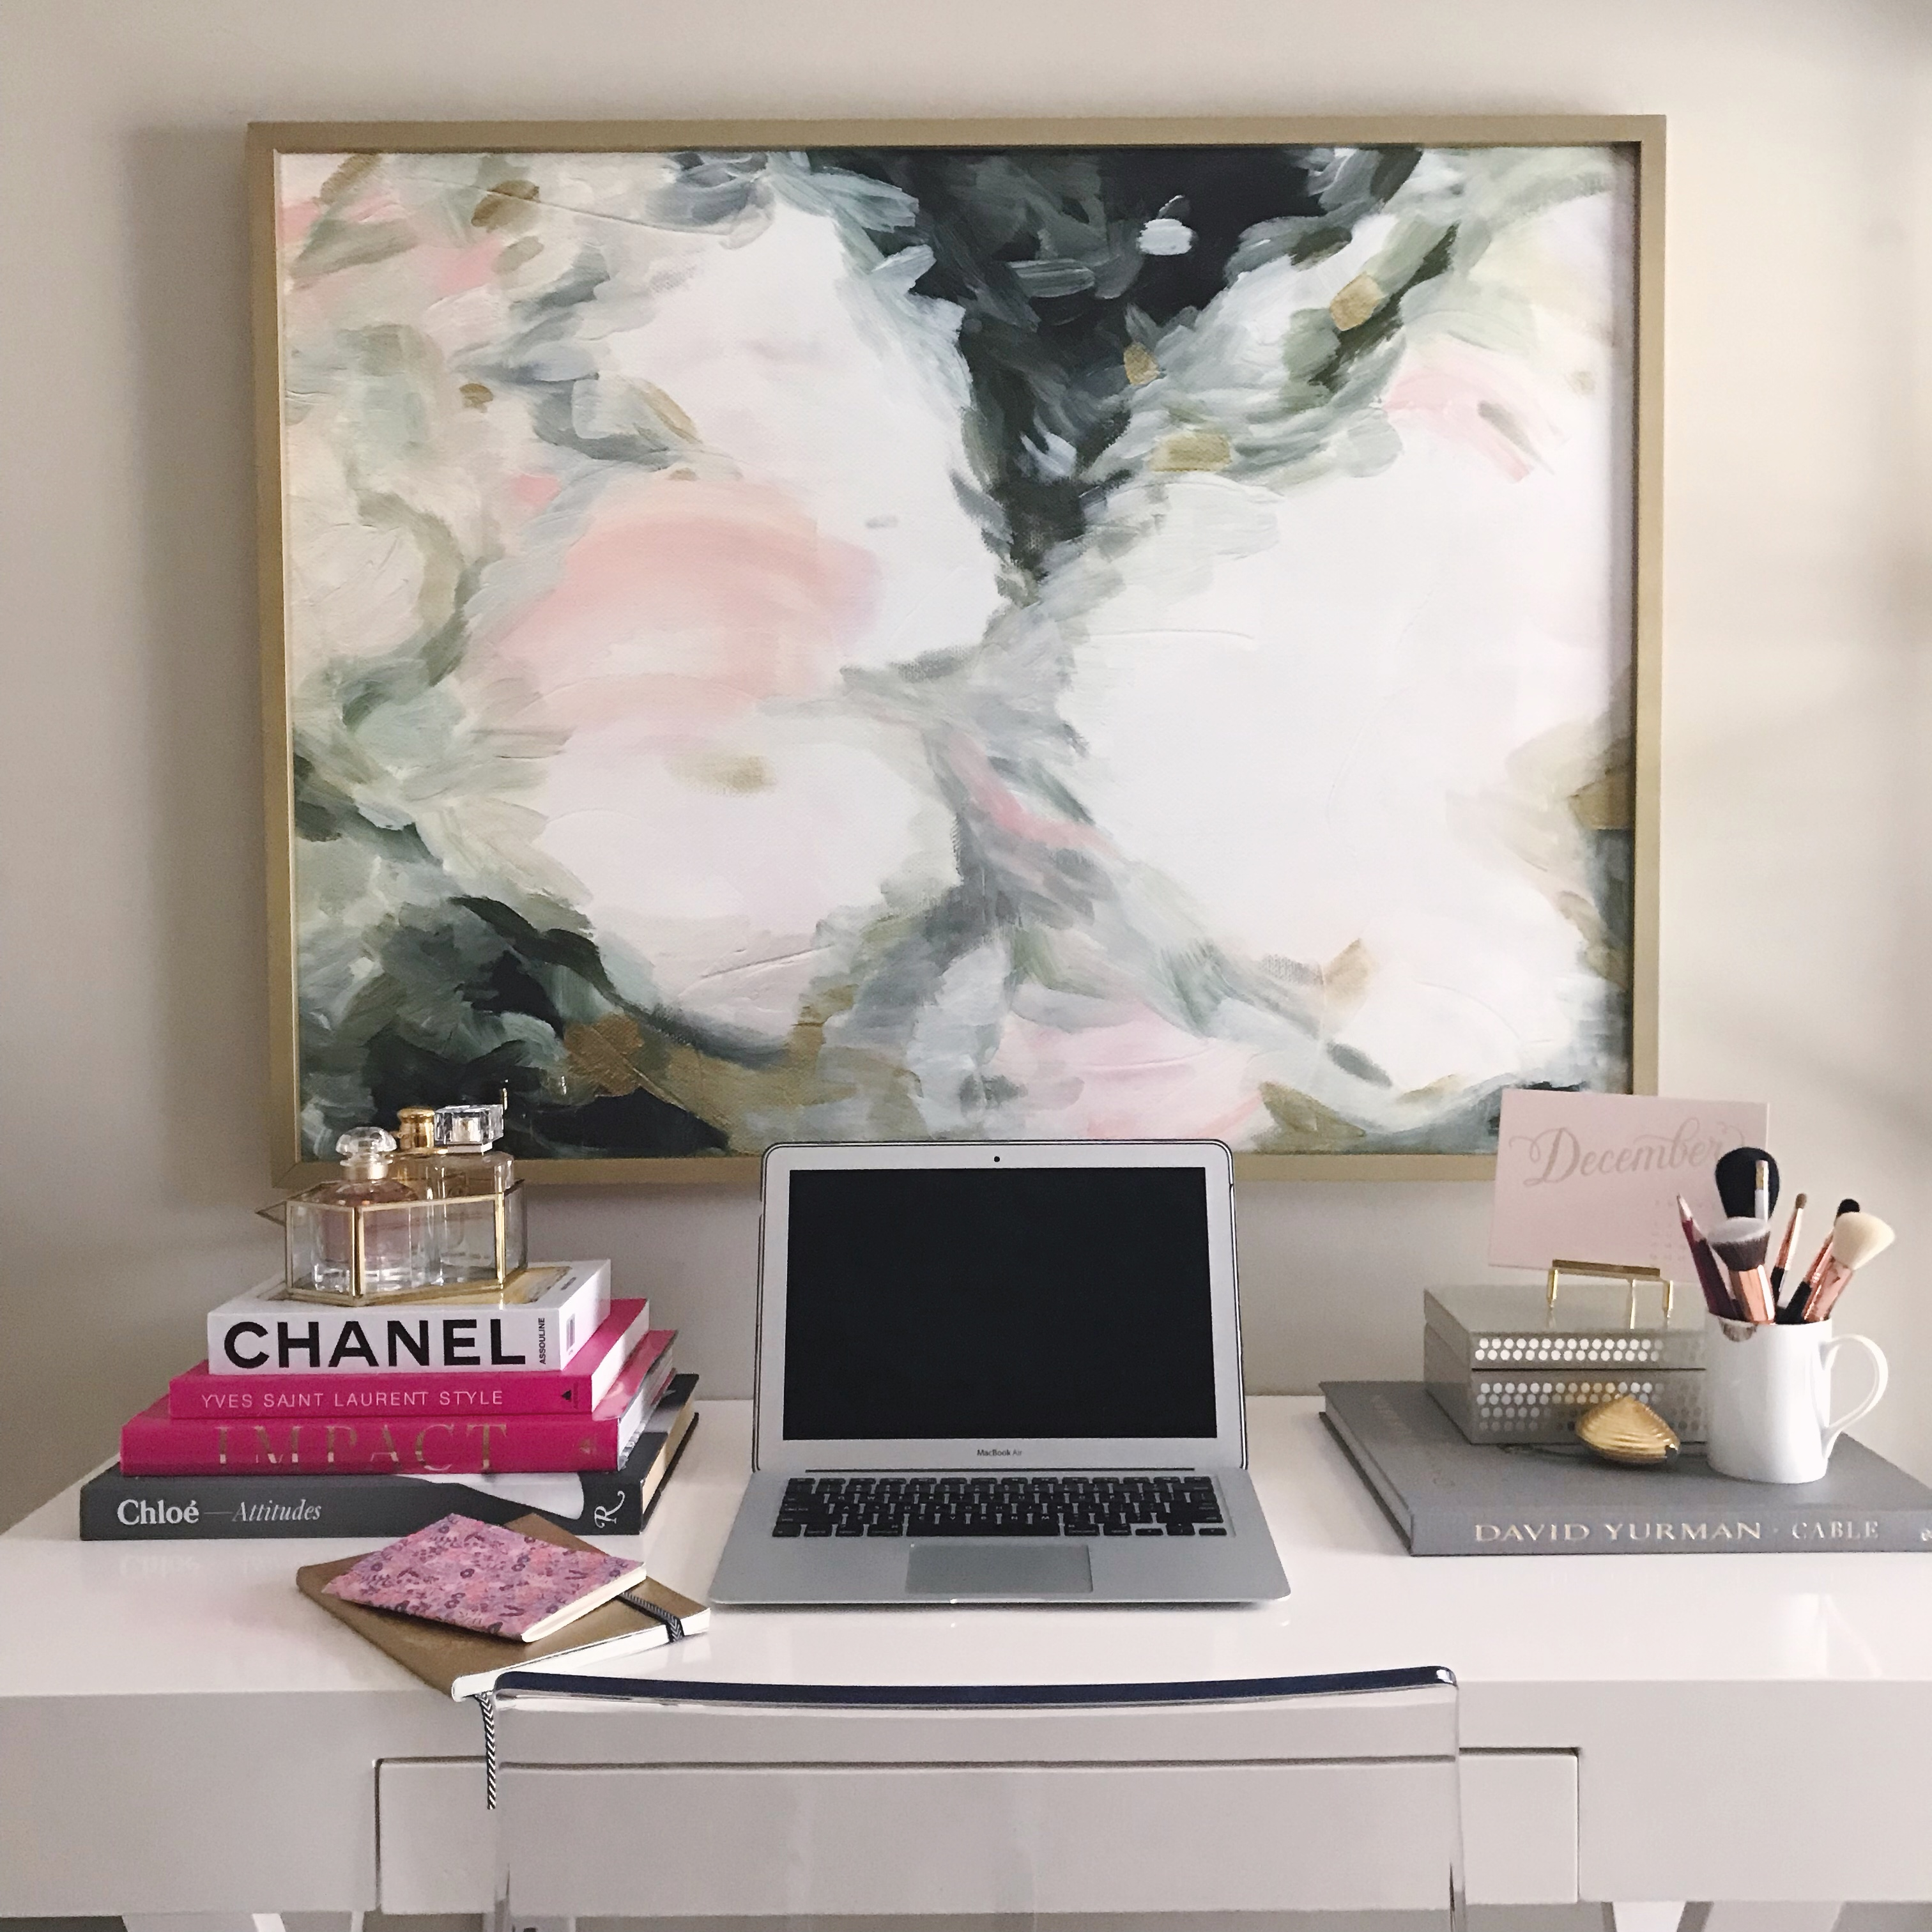 I am currently in the process of updating my home office. Here is a little sneak peek of what I have done so far by adding the Minted Mesmerize Wall Art.